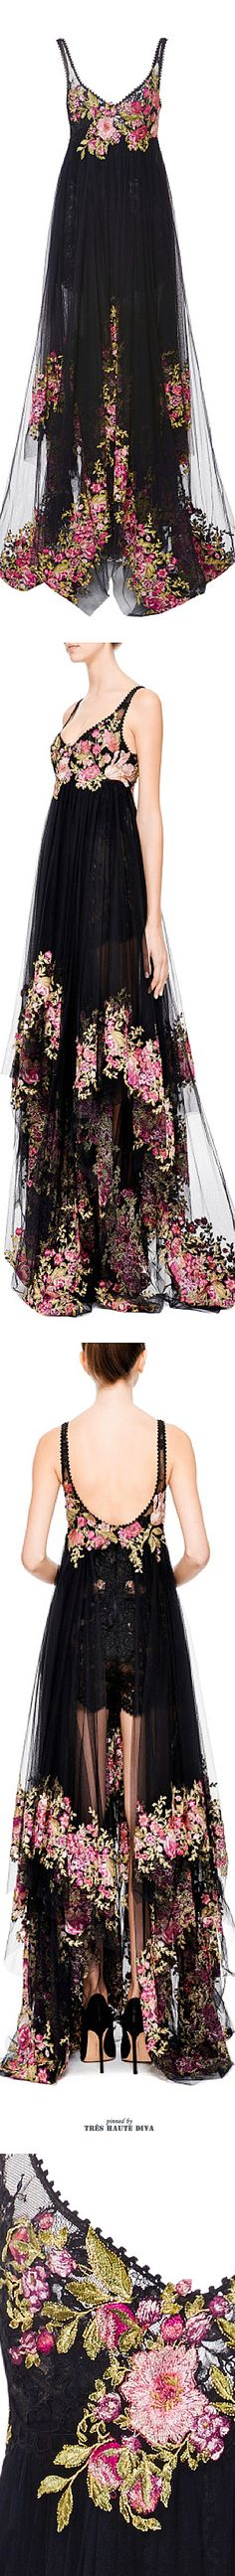 Black and floral Marchesa gown.